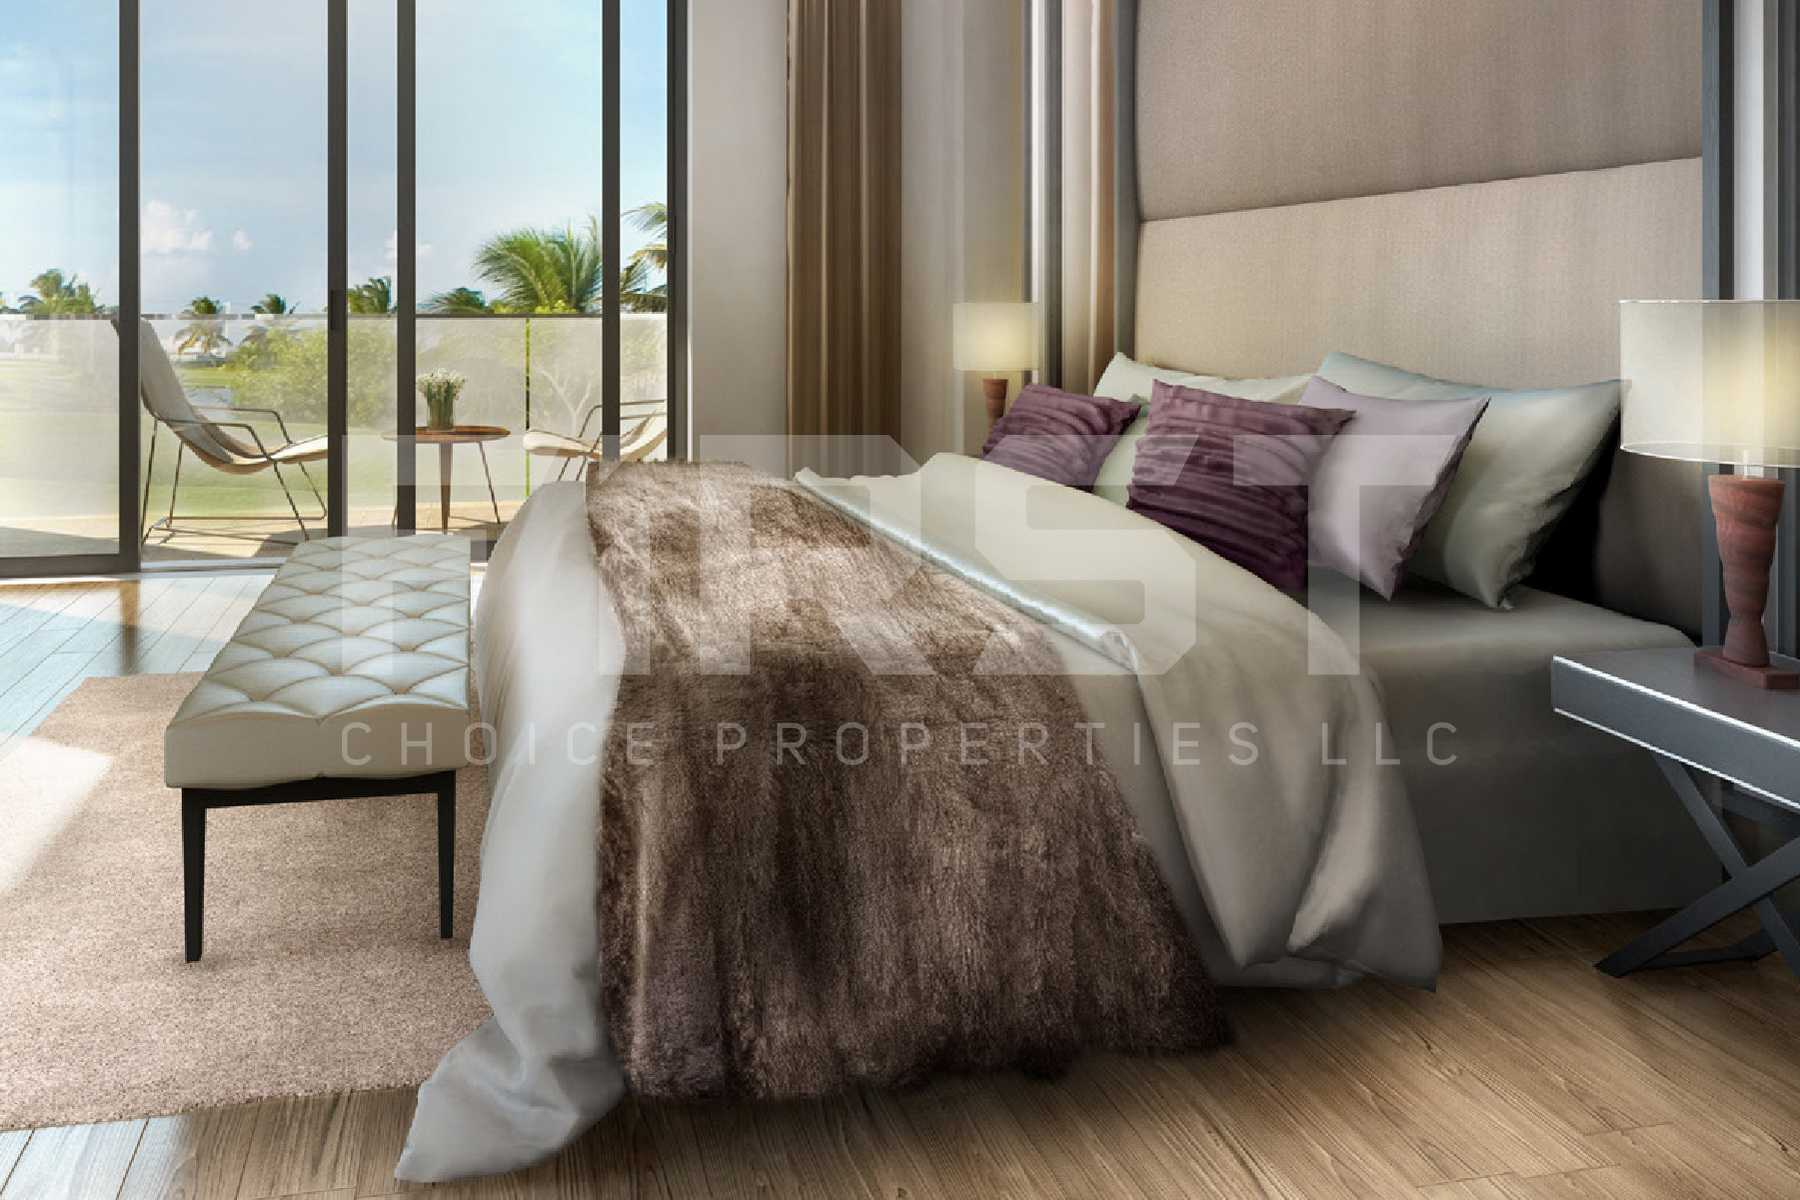 Internal Photo of 3 Bedroom Townhouse in Yas Acres Yas Island Abu Dhabi UAE (6).jpg